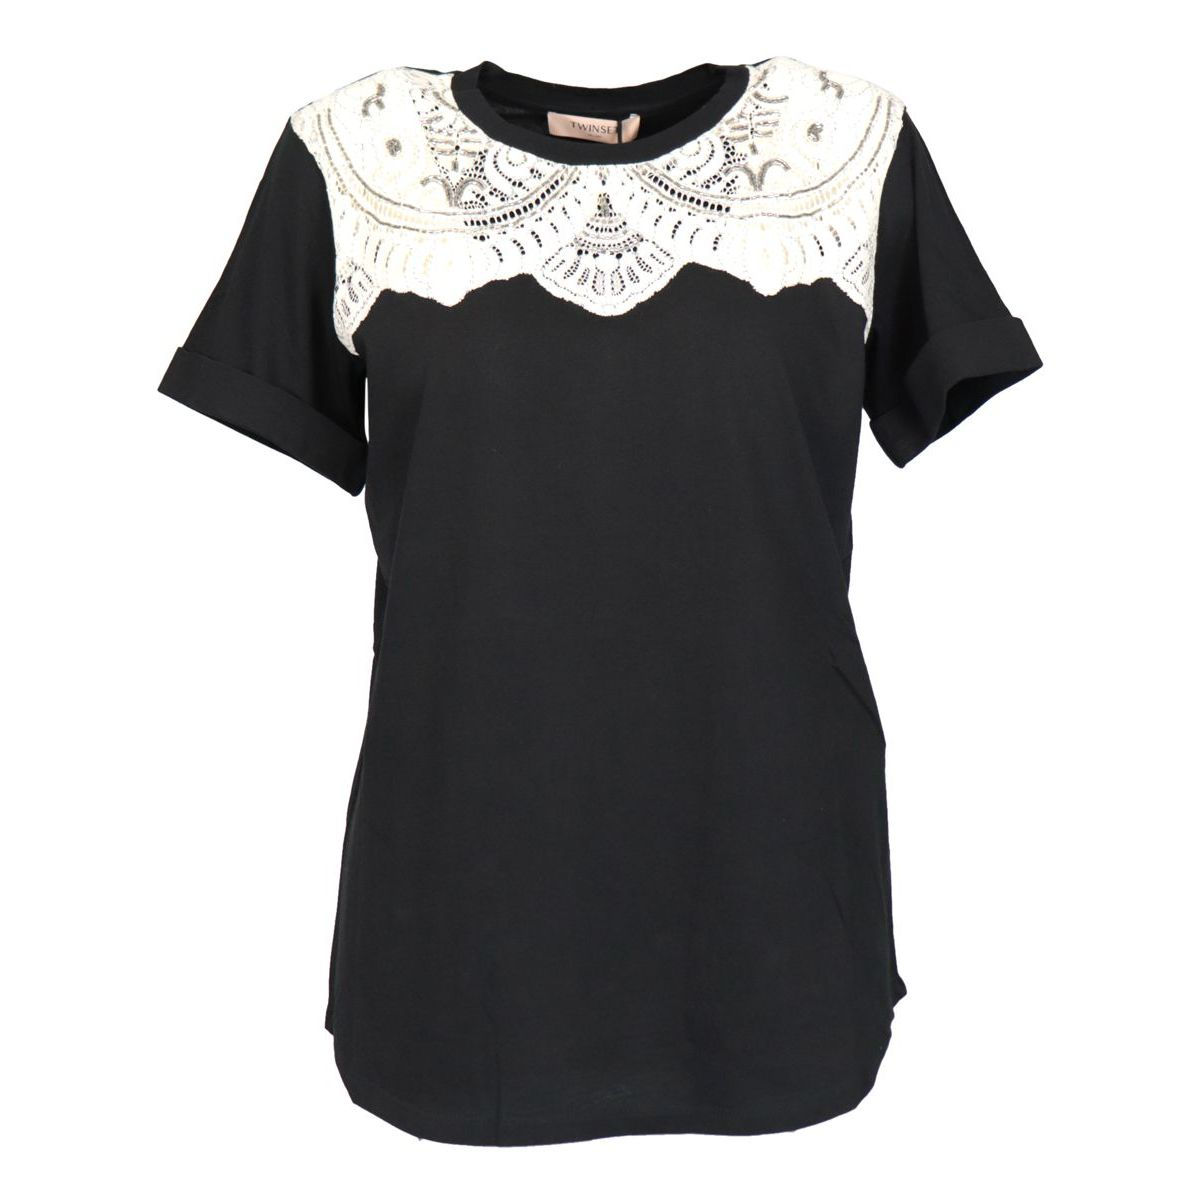 Cotton jersey T-shirt with lace inlay Black Twin-Set